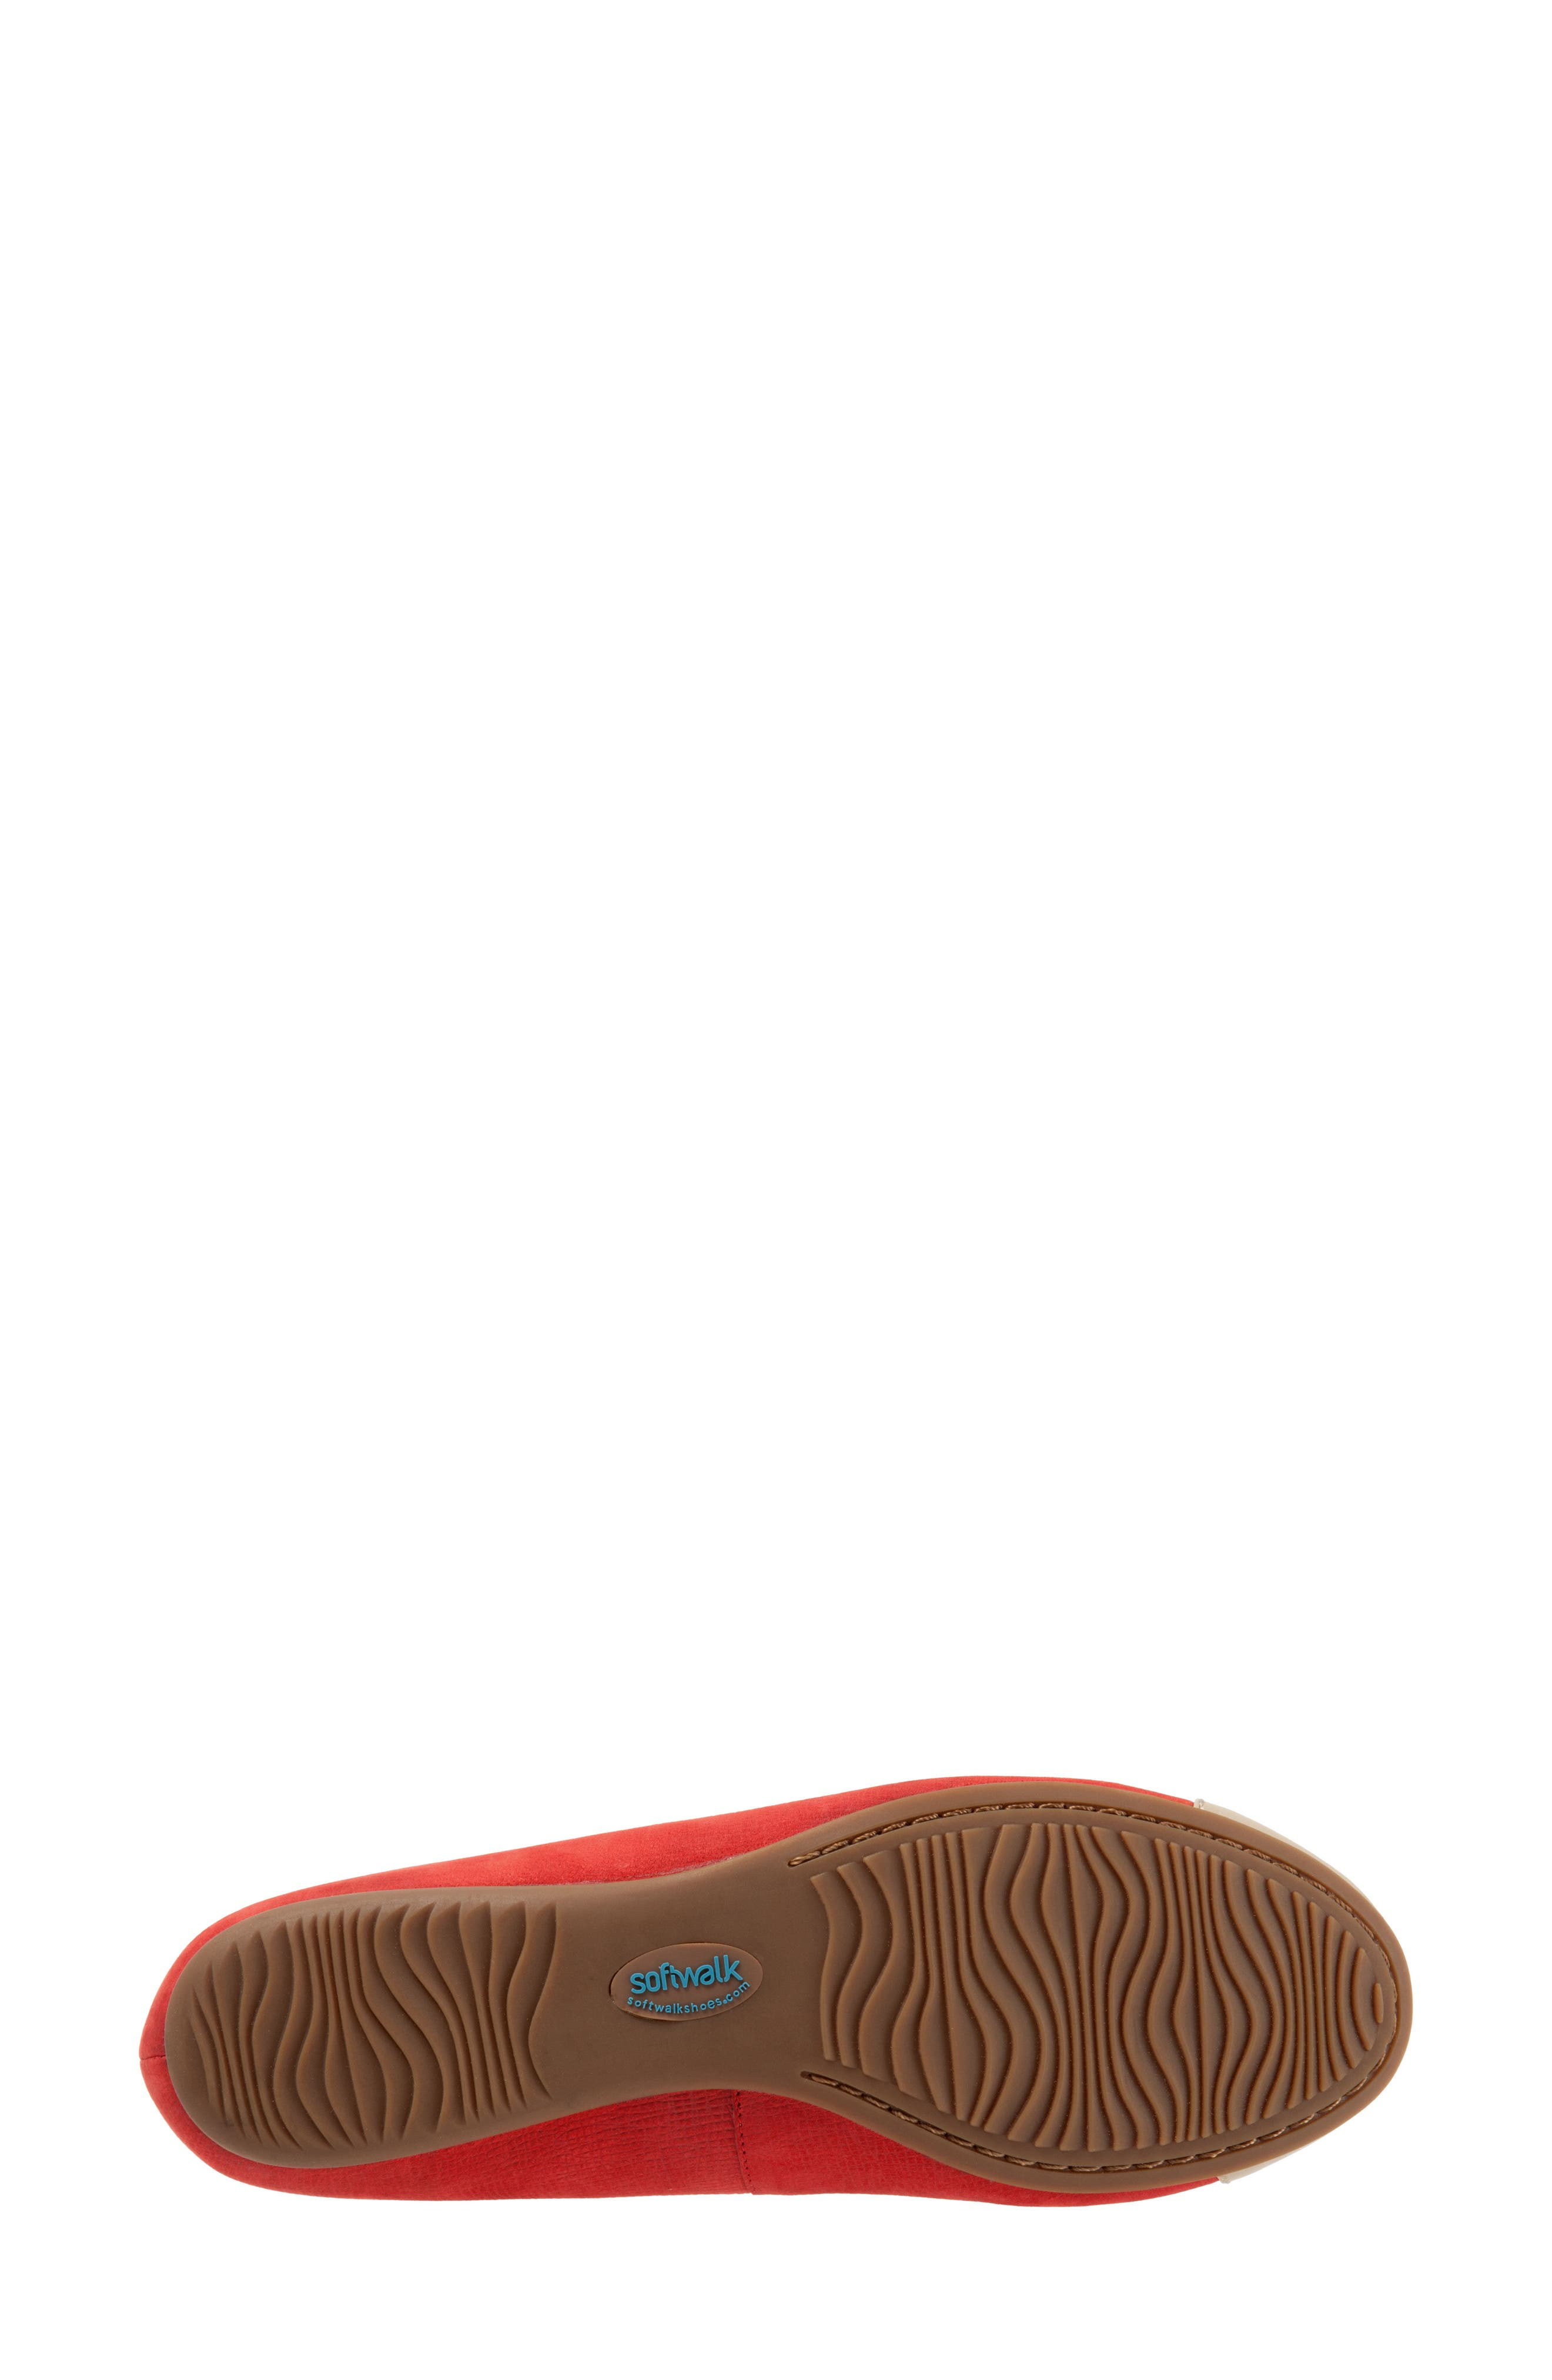 Napa Mary Jane Flat,                             Alternate thumbnail 8, color,                             Red/ Nude Leather